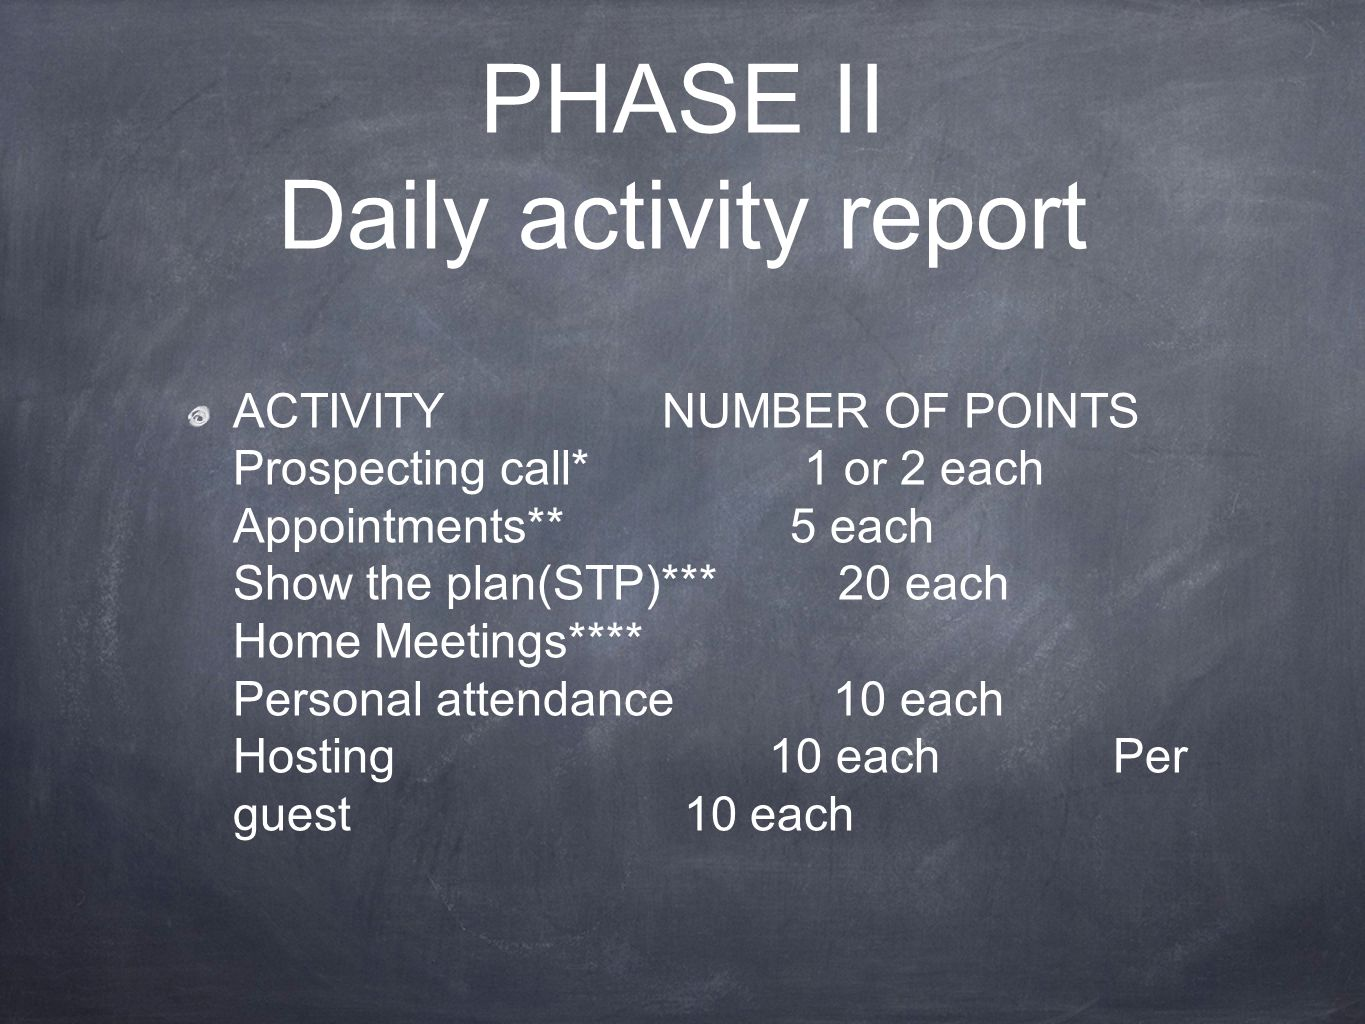 PHASE II Daily activity report ACTIVITY NUMBER OF POINTS Prospecting call* 1 or 2 each Appointments** 5 each Show the plan(STP)*** 20 each Home Meetin